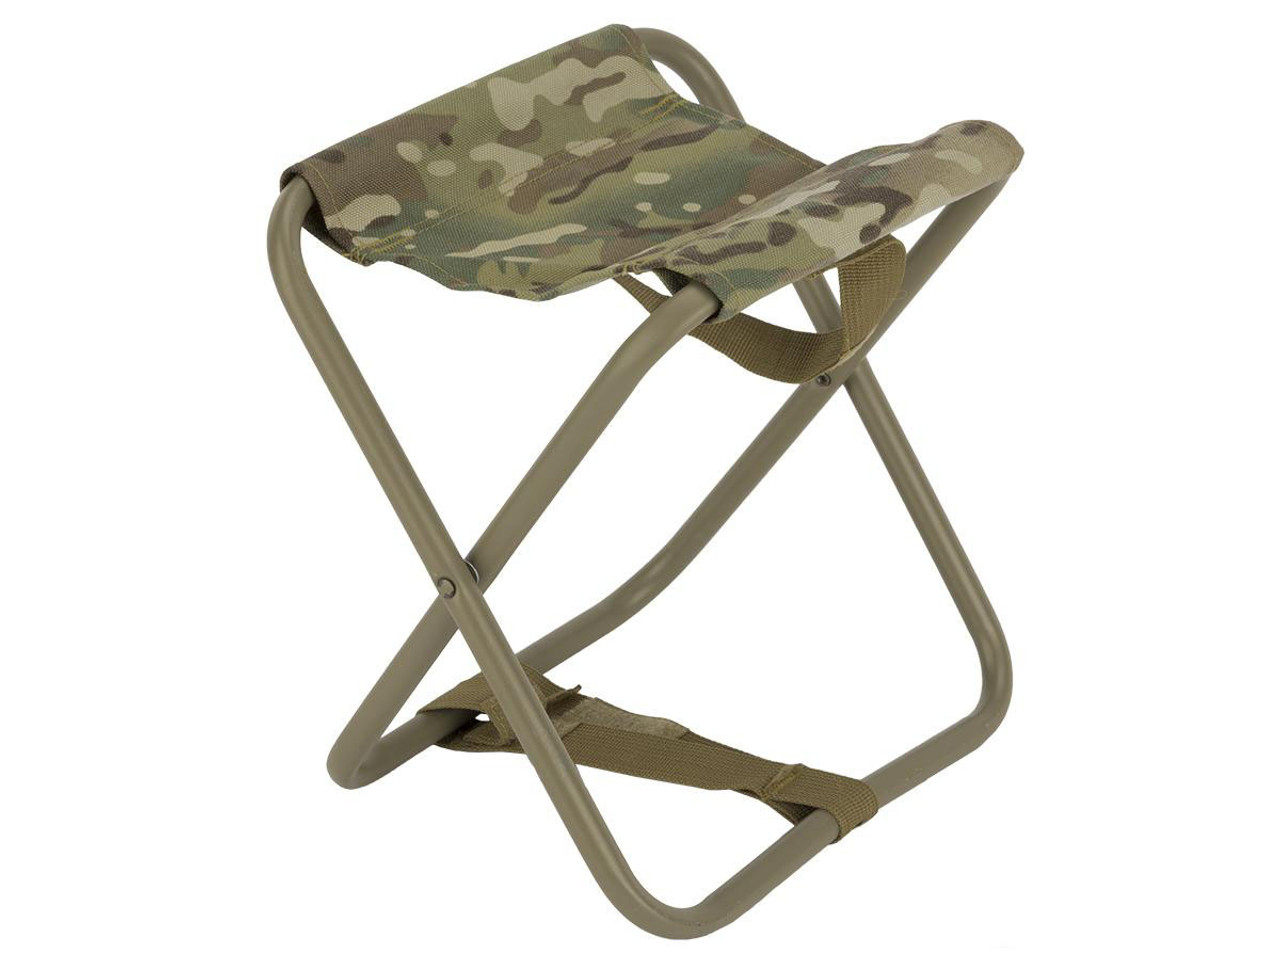 Amazing Matrix Outdoor Multifunctional Folding Chair Color Camo Unemploymentrelief Wooden Chair Designs For Living Room Unemploymentrelieforg